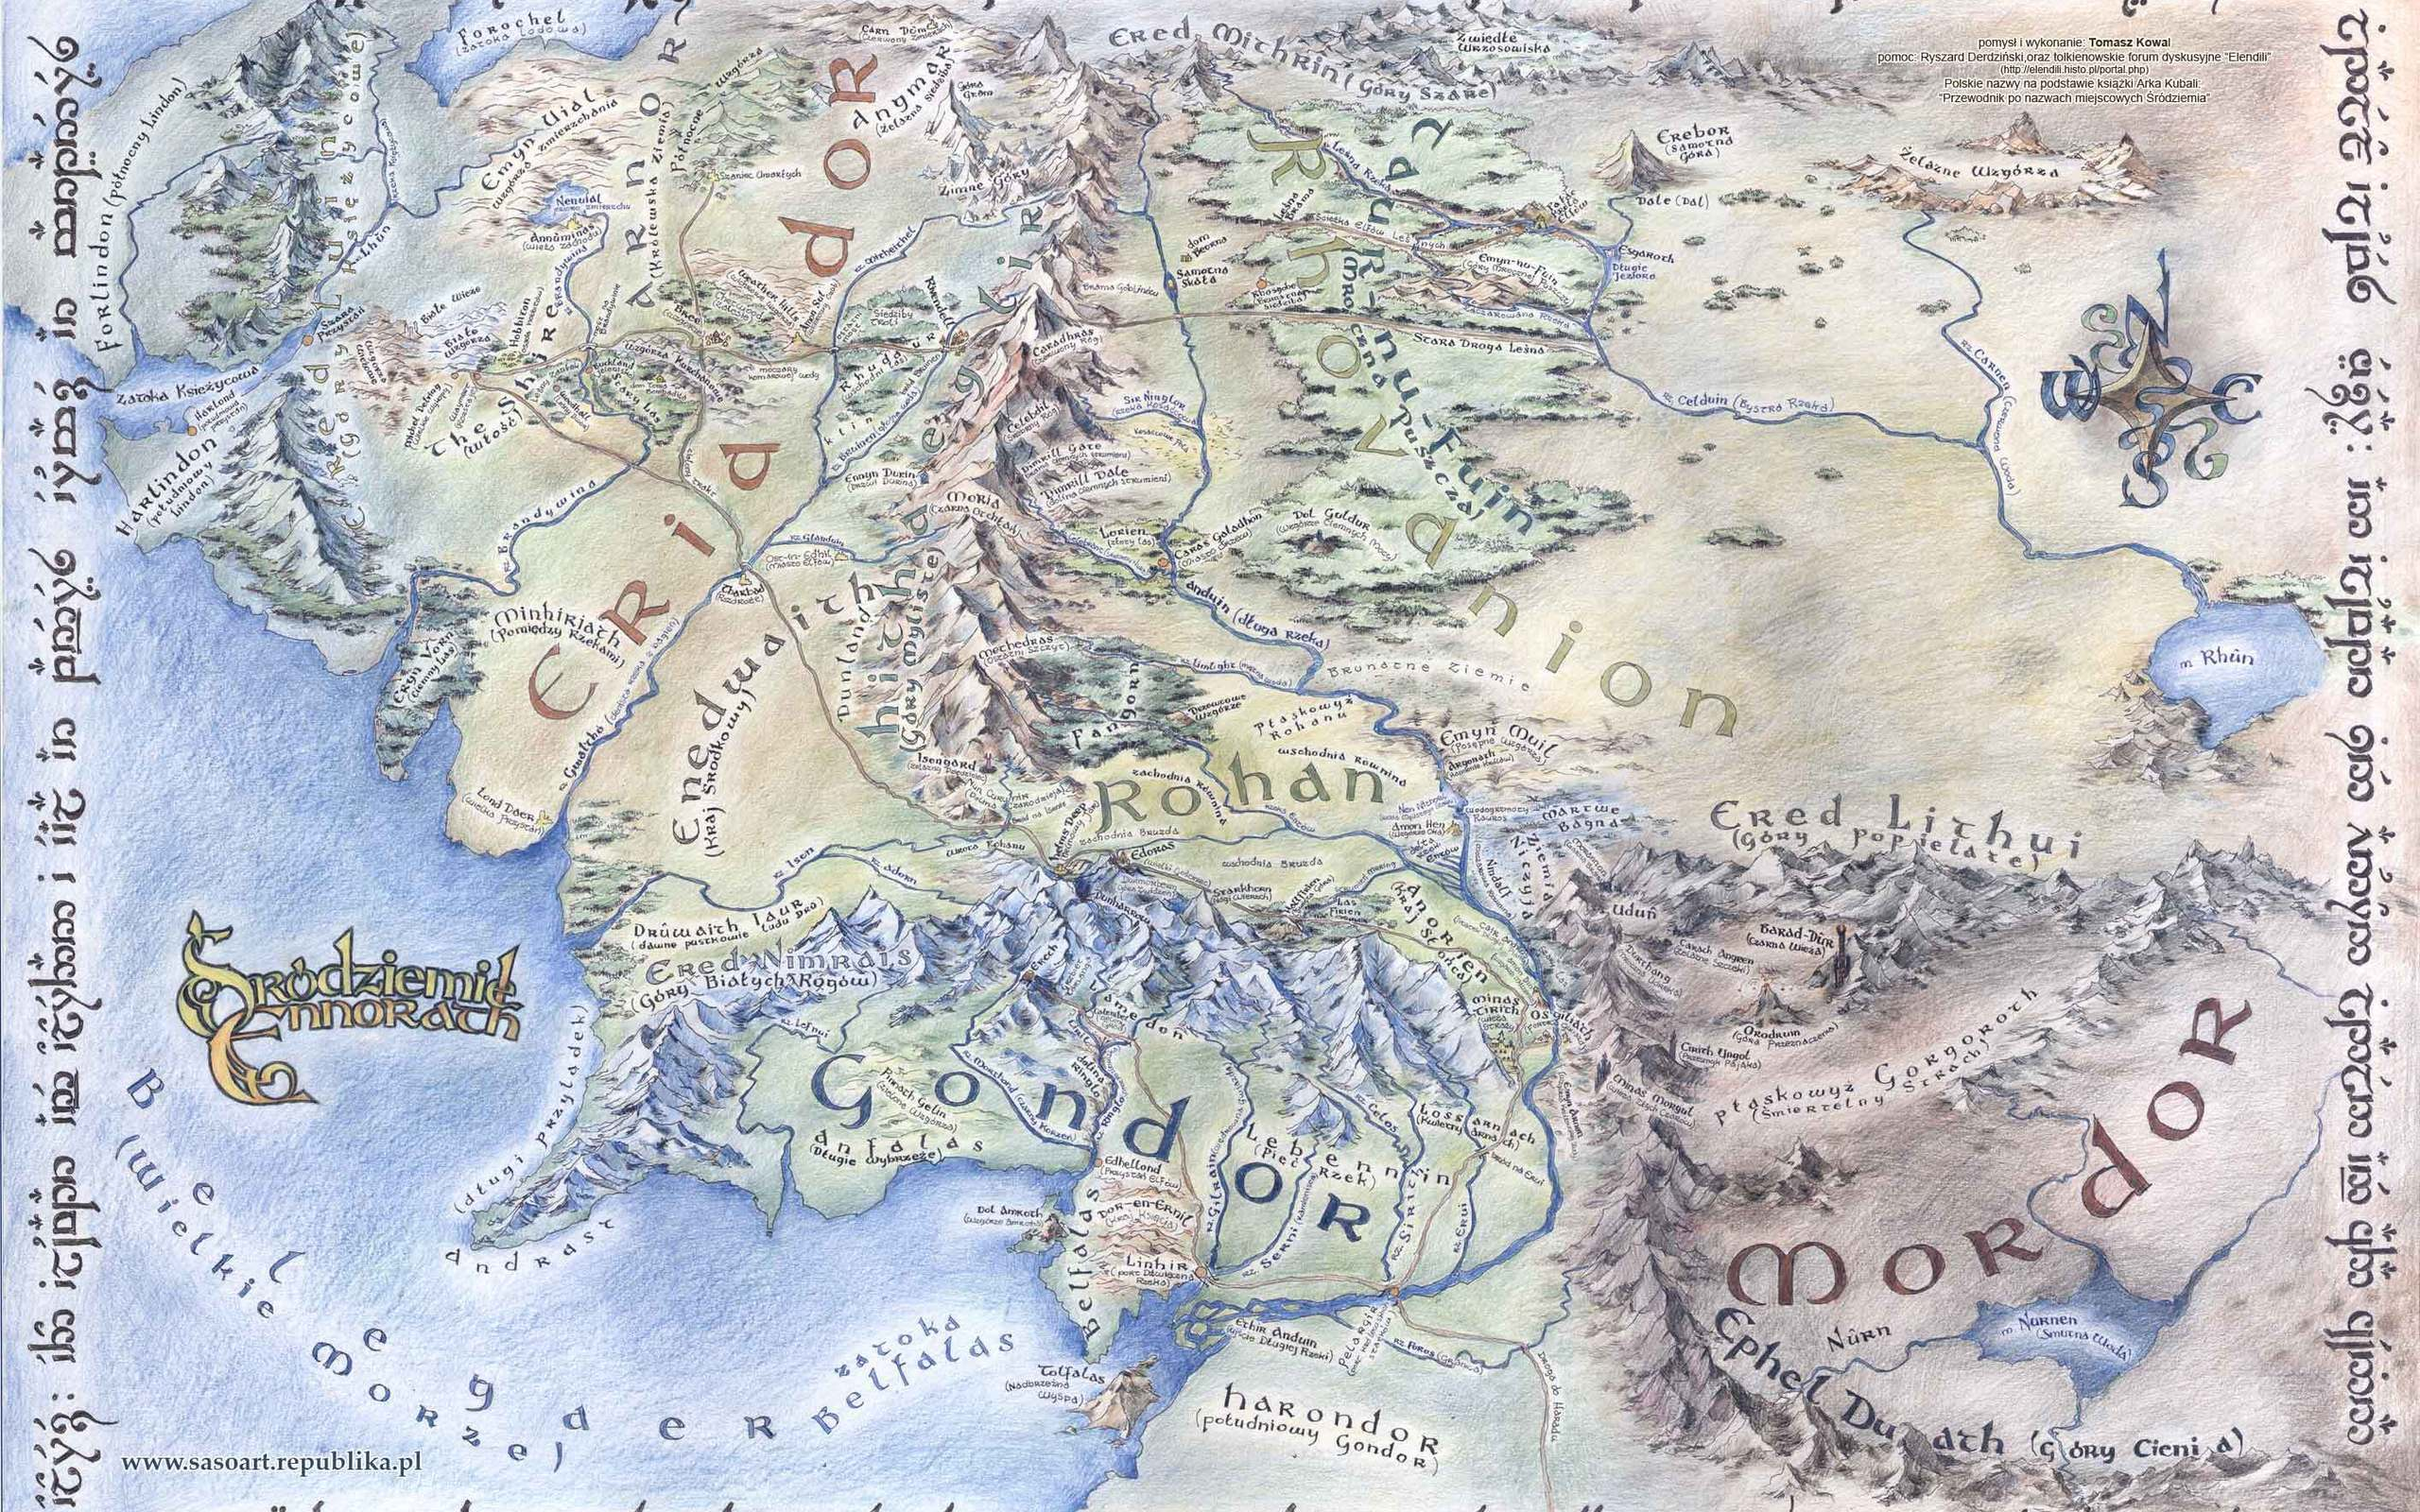 large detailed map of middleearth desktop wallpapers x. map of middle earth wallpapers  wallpaper cave